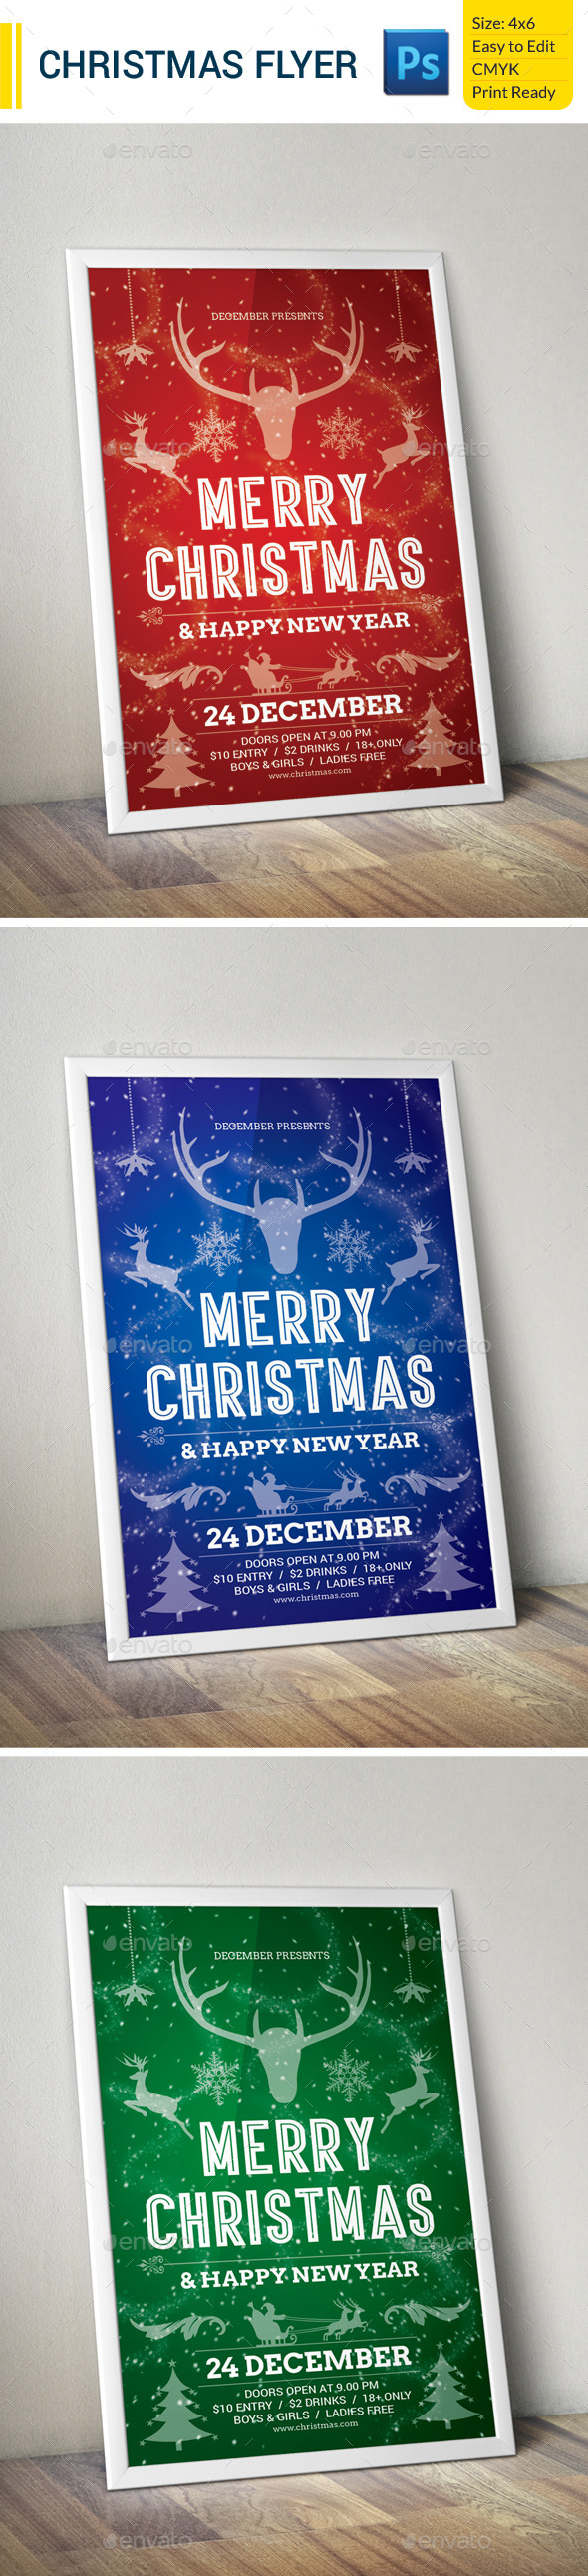 GraphicRiver Christmas Flyer 9720147